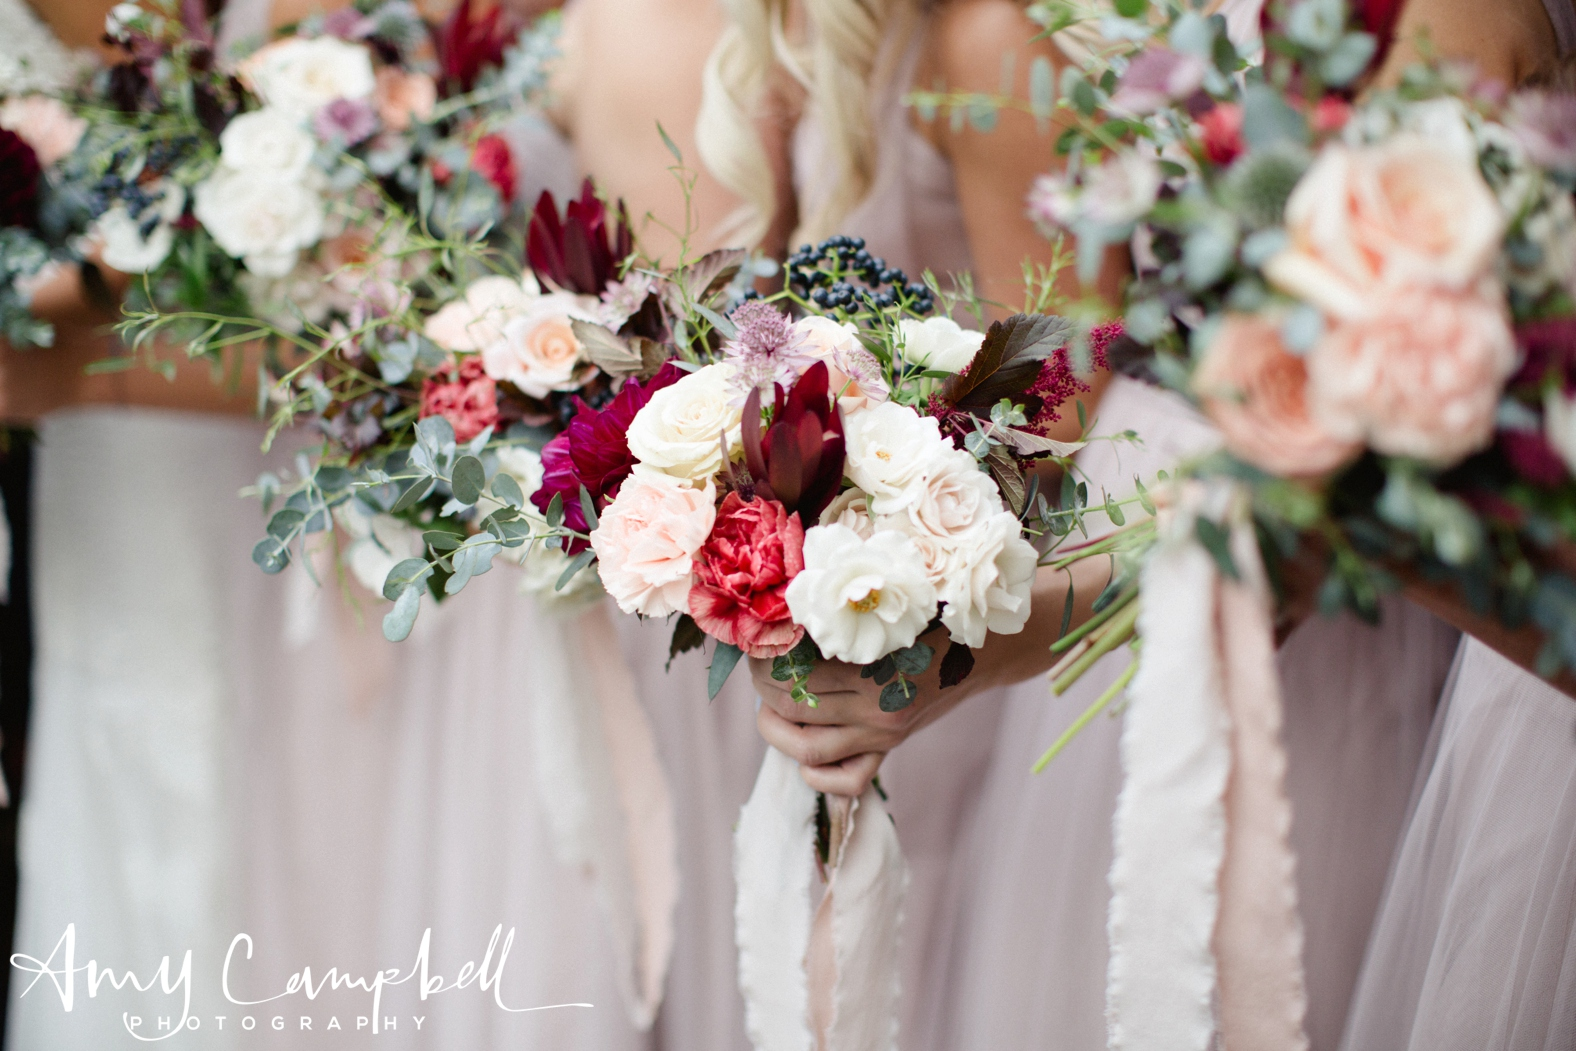 Amy Campbell Photography - Apiary Fine Catering - Lexington KY - Shelly Fortune Events - Elizabeth Earnest Florals